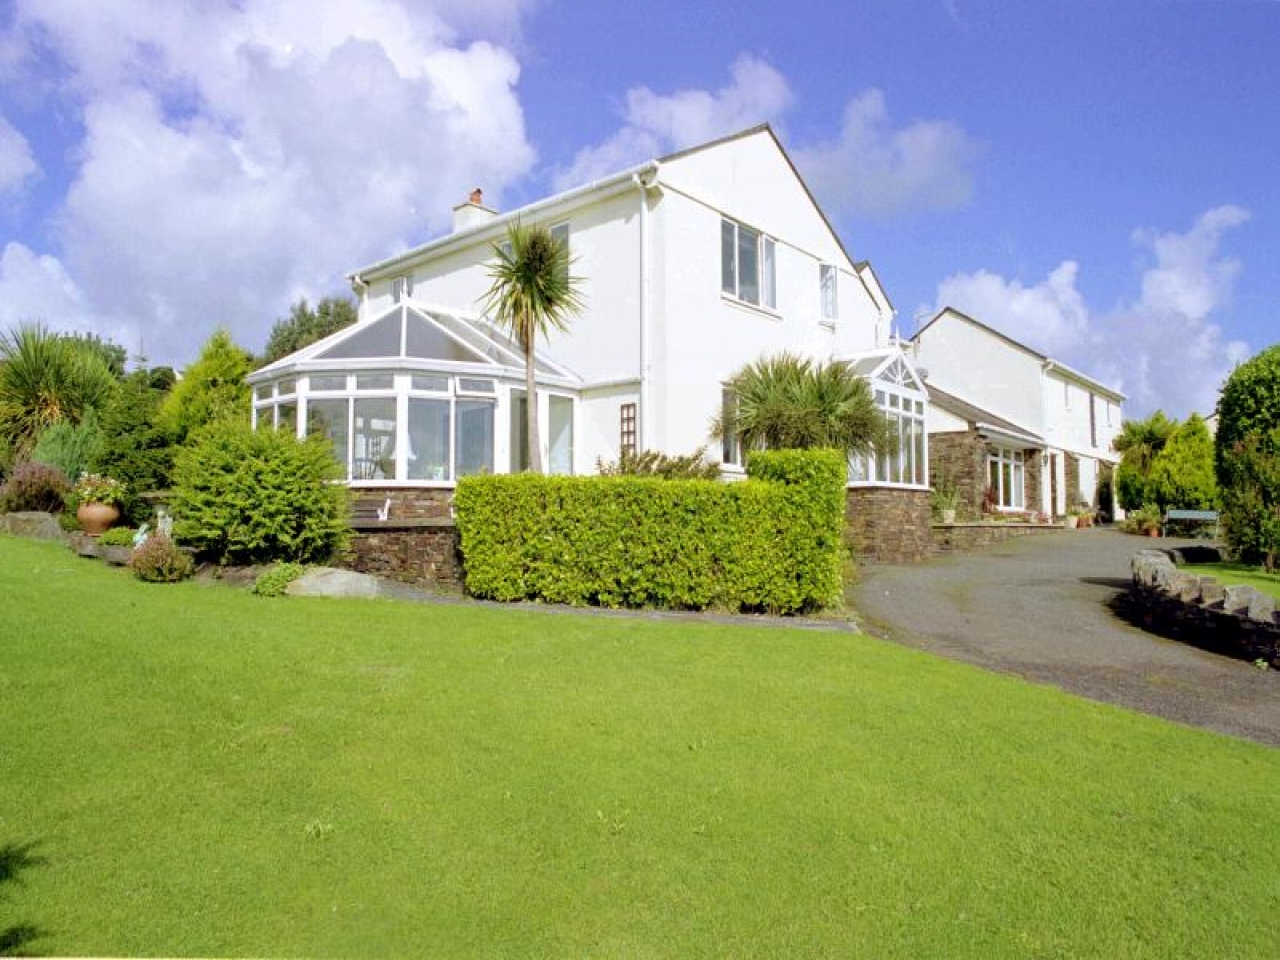 4 bedroom detached house For Sale in Laxey - 1